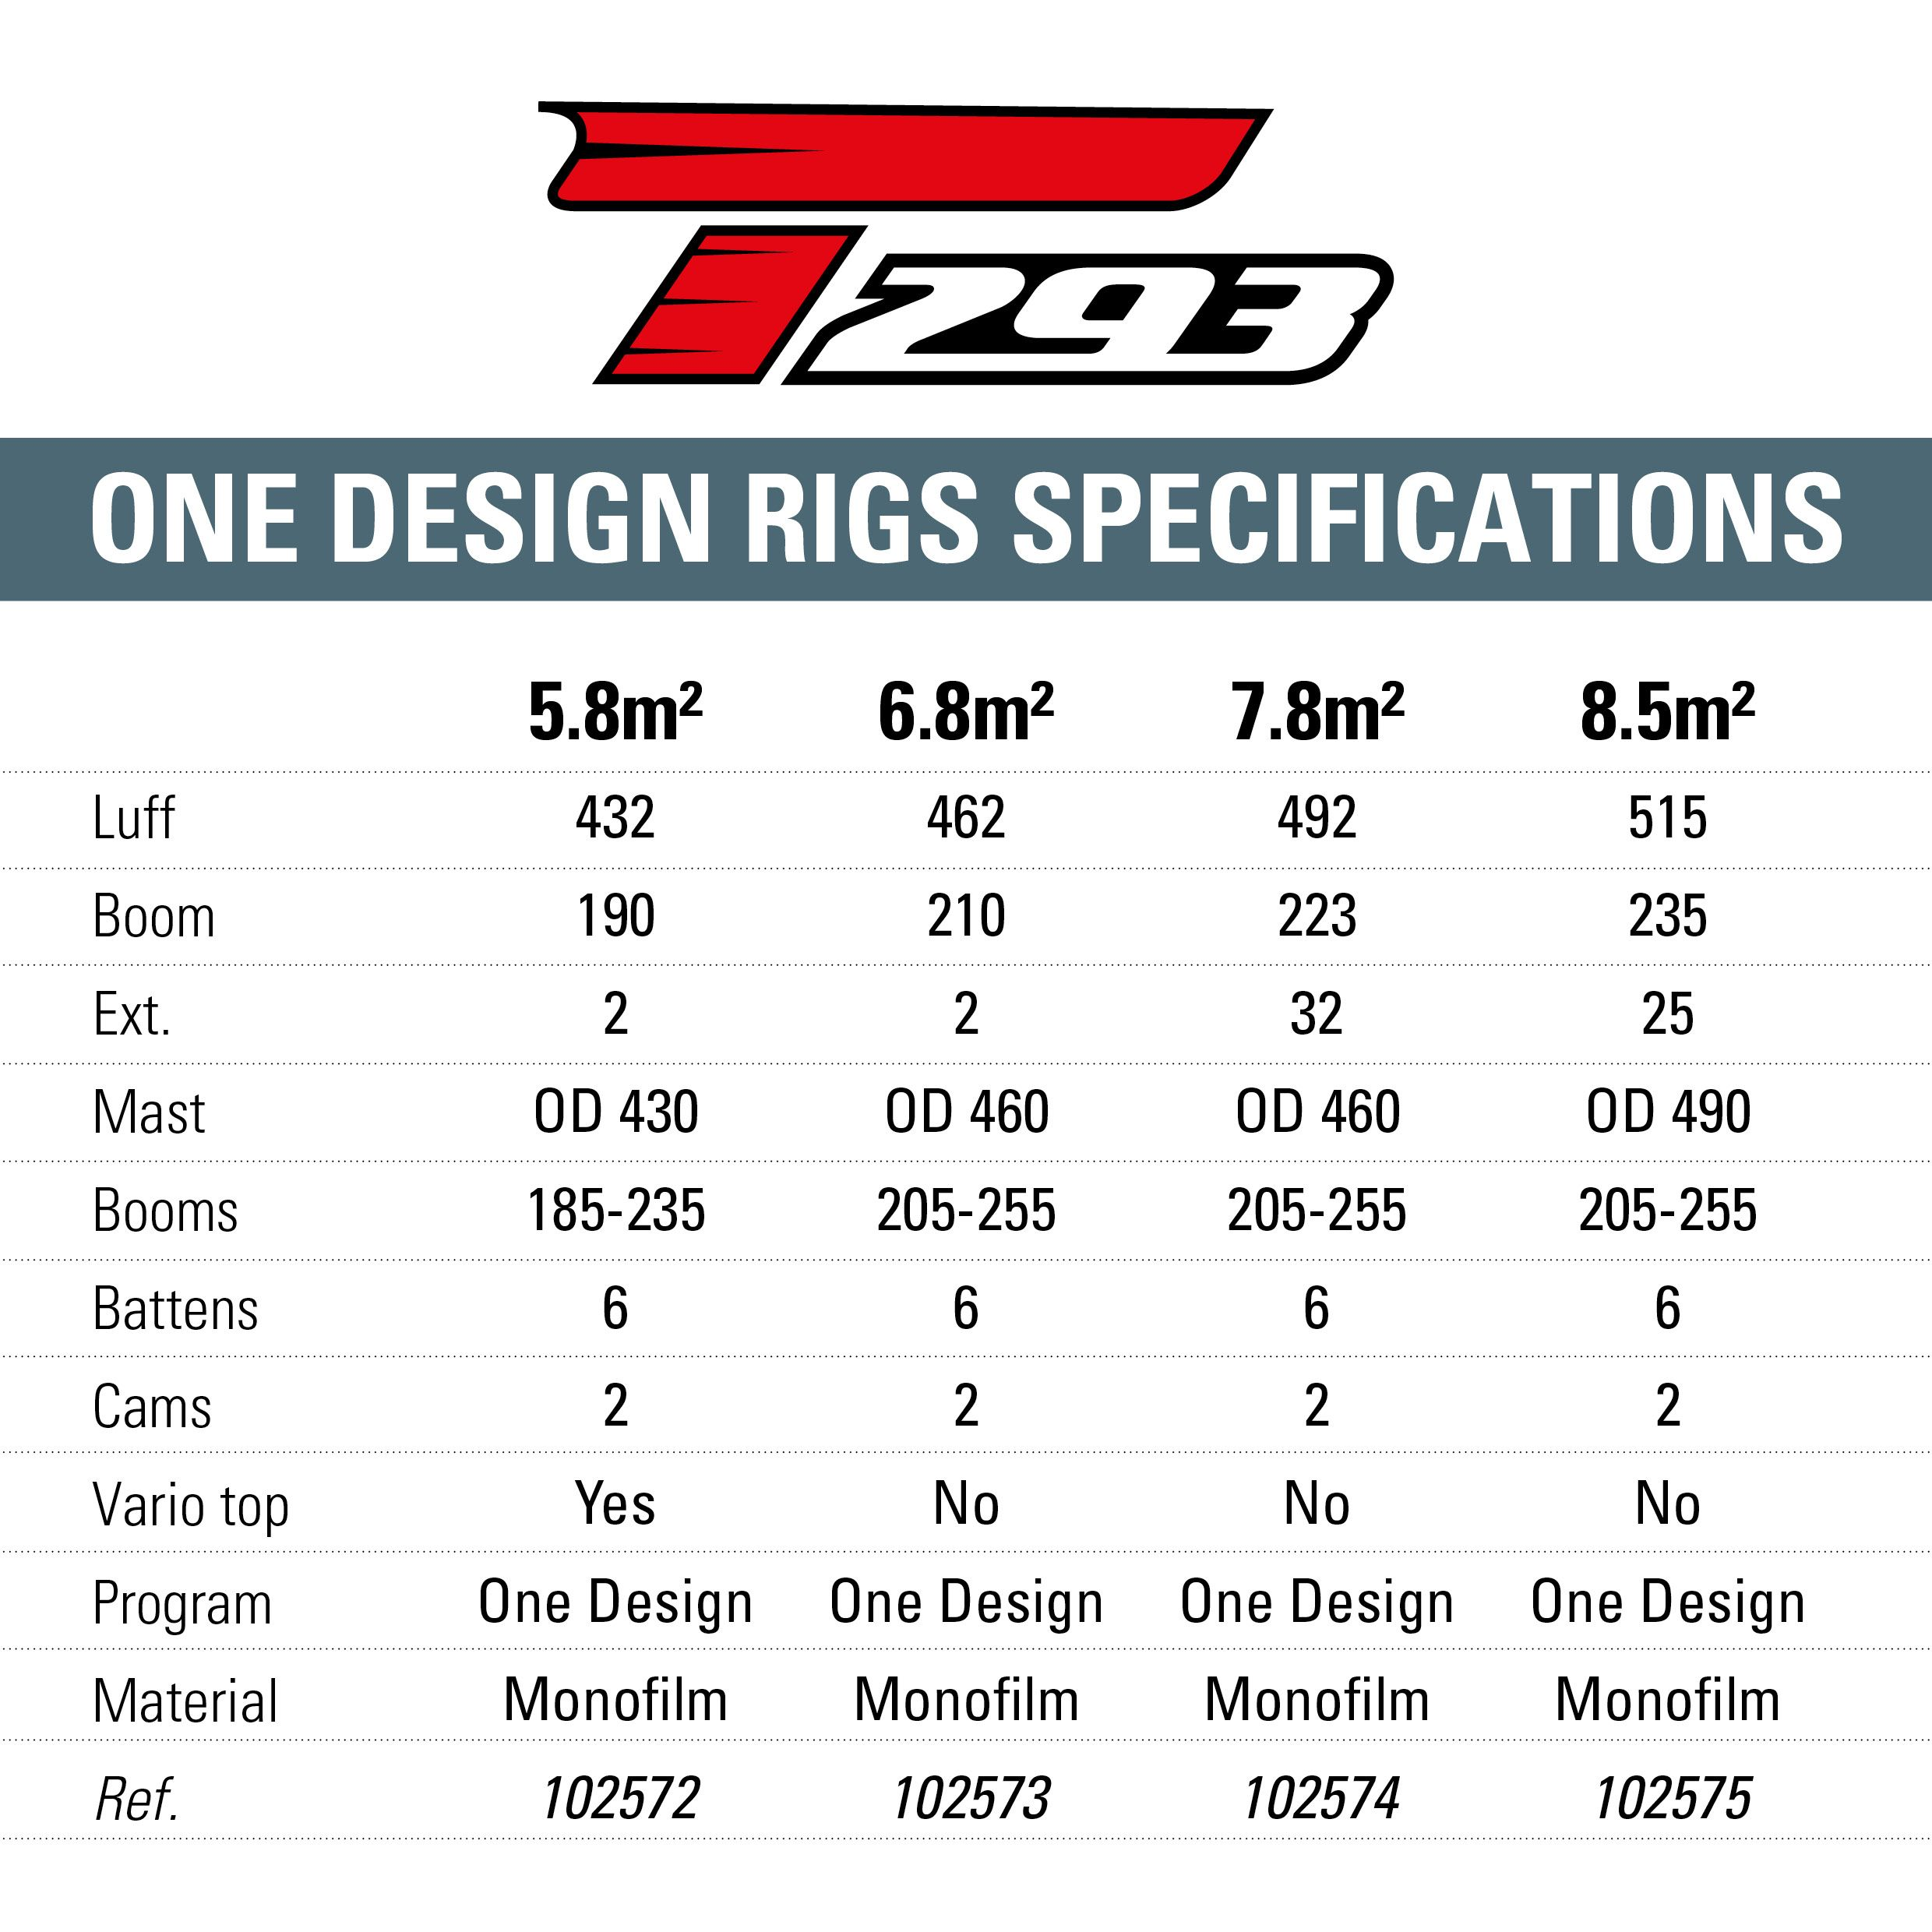 T293_One-Design_Rigs_Specs_2019.jpg